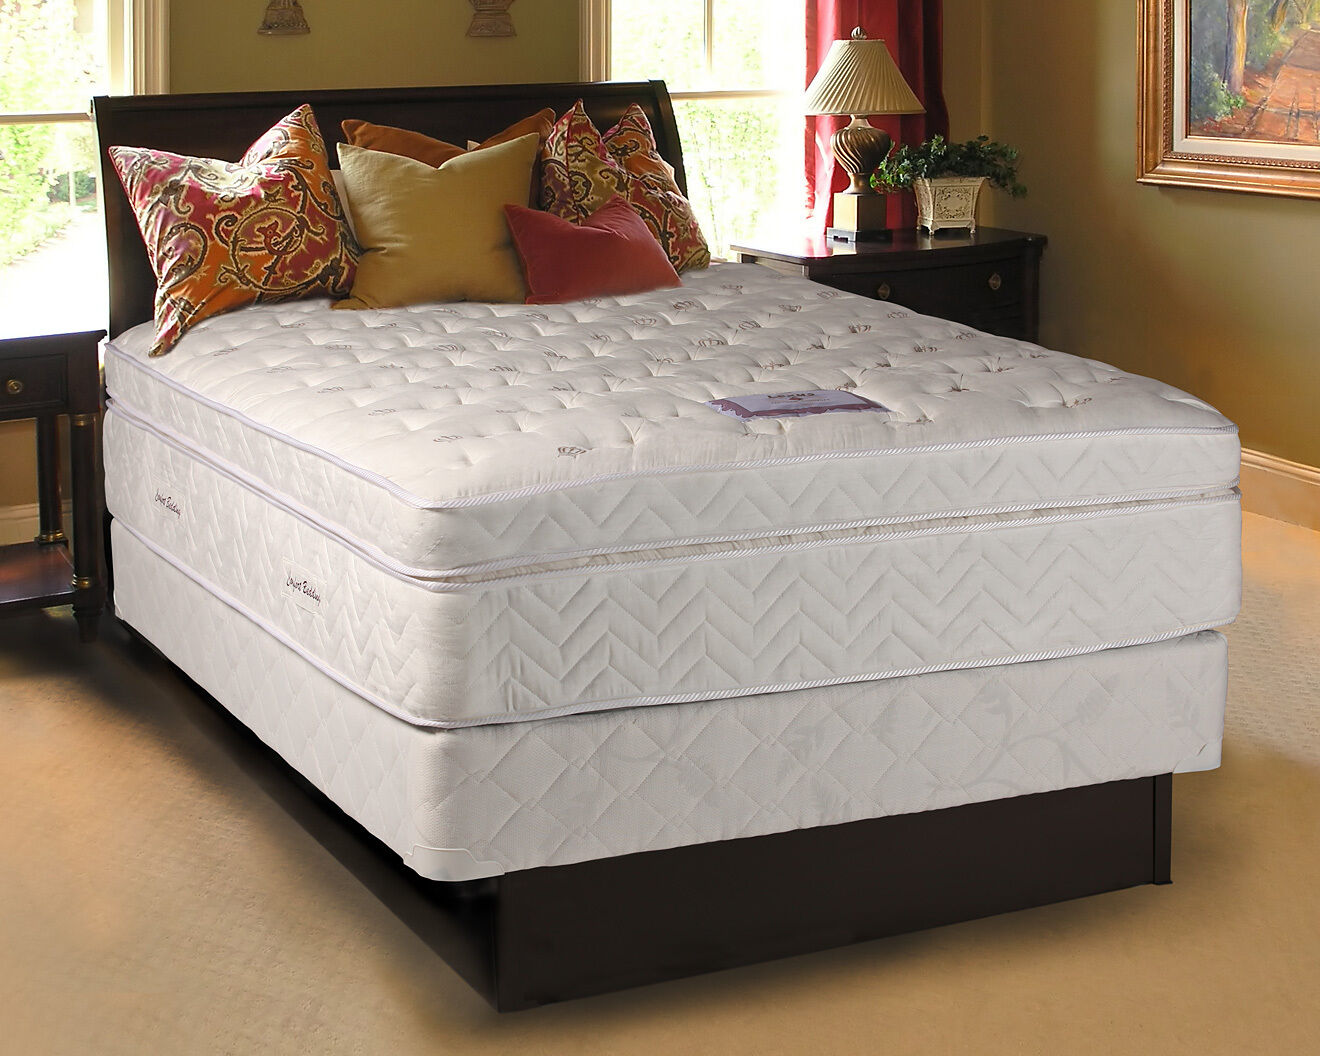 Beddings 4 Less